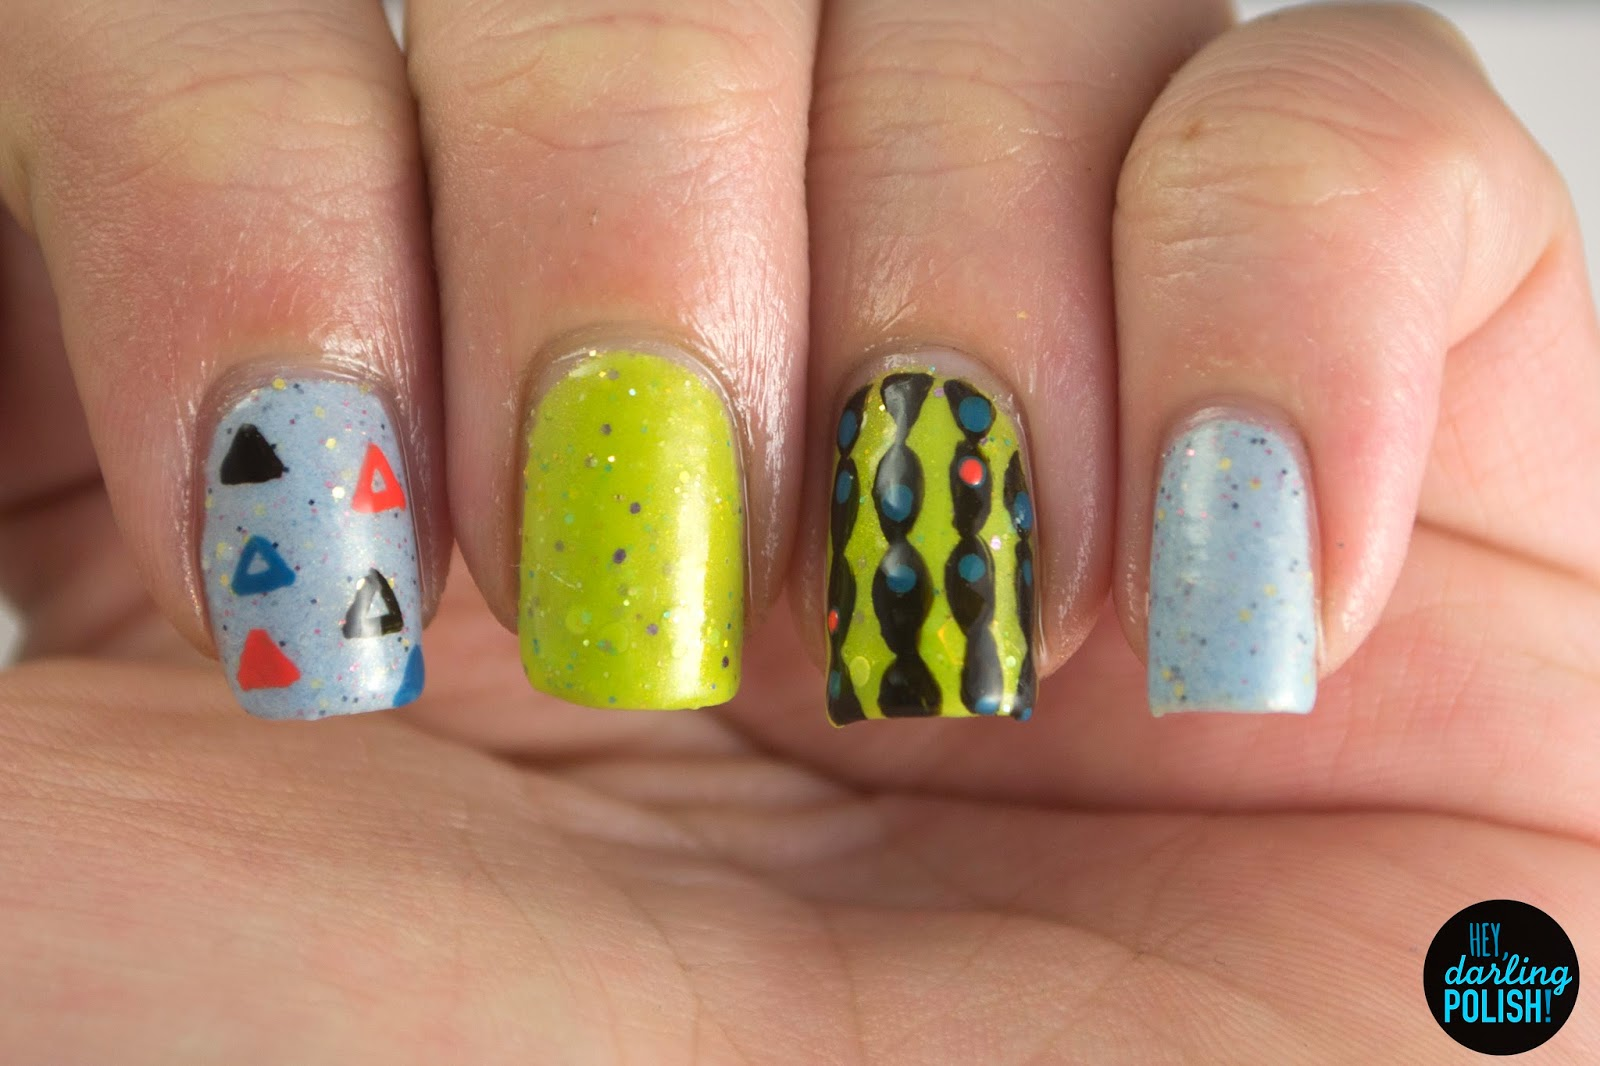 nails, nail art, nail polish, polish, blue, green, skittles, triangles, vintage, retro, indie, indie polish, hey darling polish, the never ending pile challenge, tgpnpc